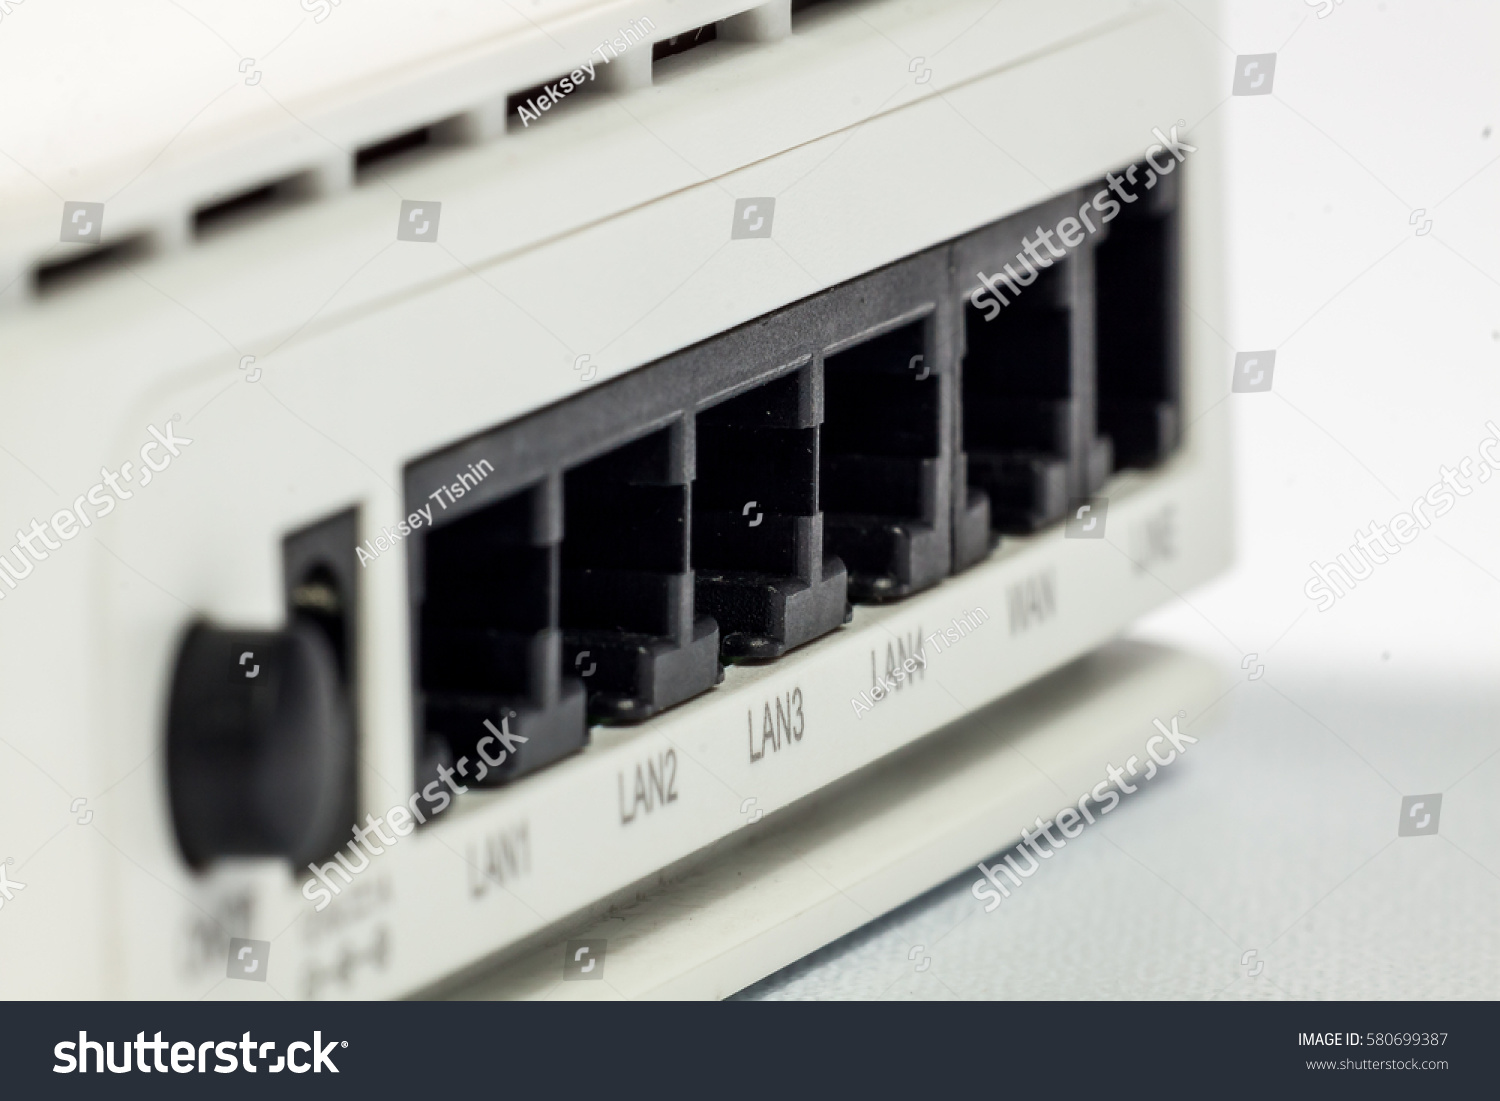 Small Network Switch Home Office Use Objects Stock Image 580699387